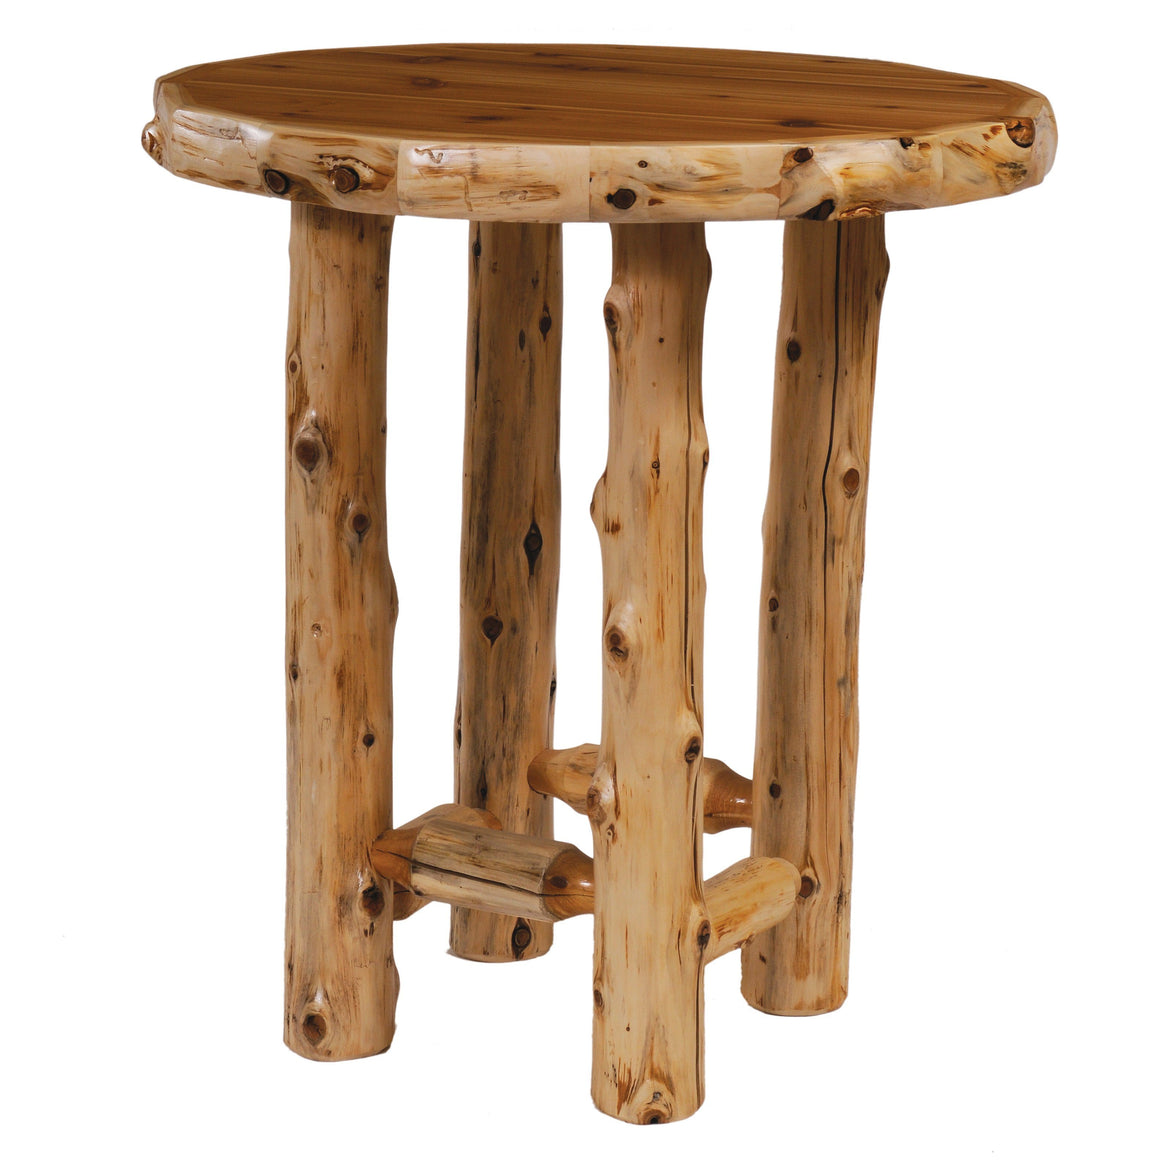 Natural Cedar Log Round Pub Table 32-36-38 Inch Game Fireside Lodge 32-Inch Standard Finish